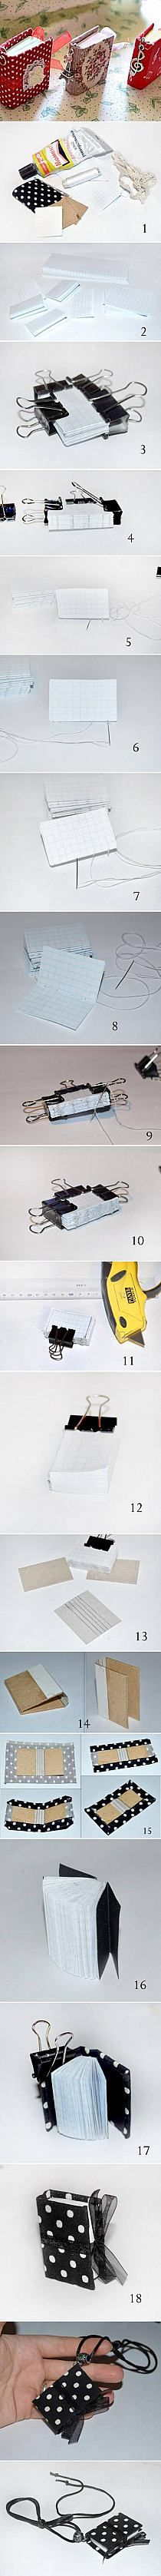 How to make Mini Notebook Pendant step by step DIY tuto…